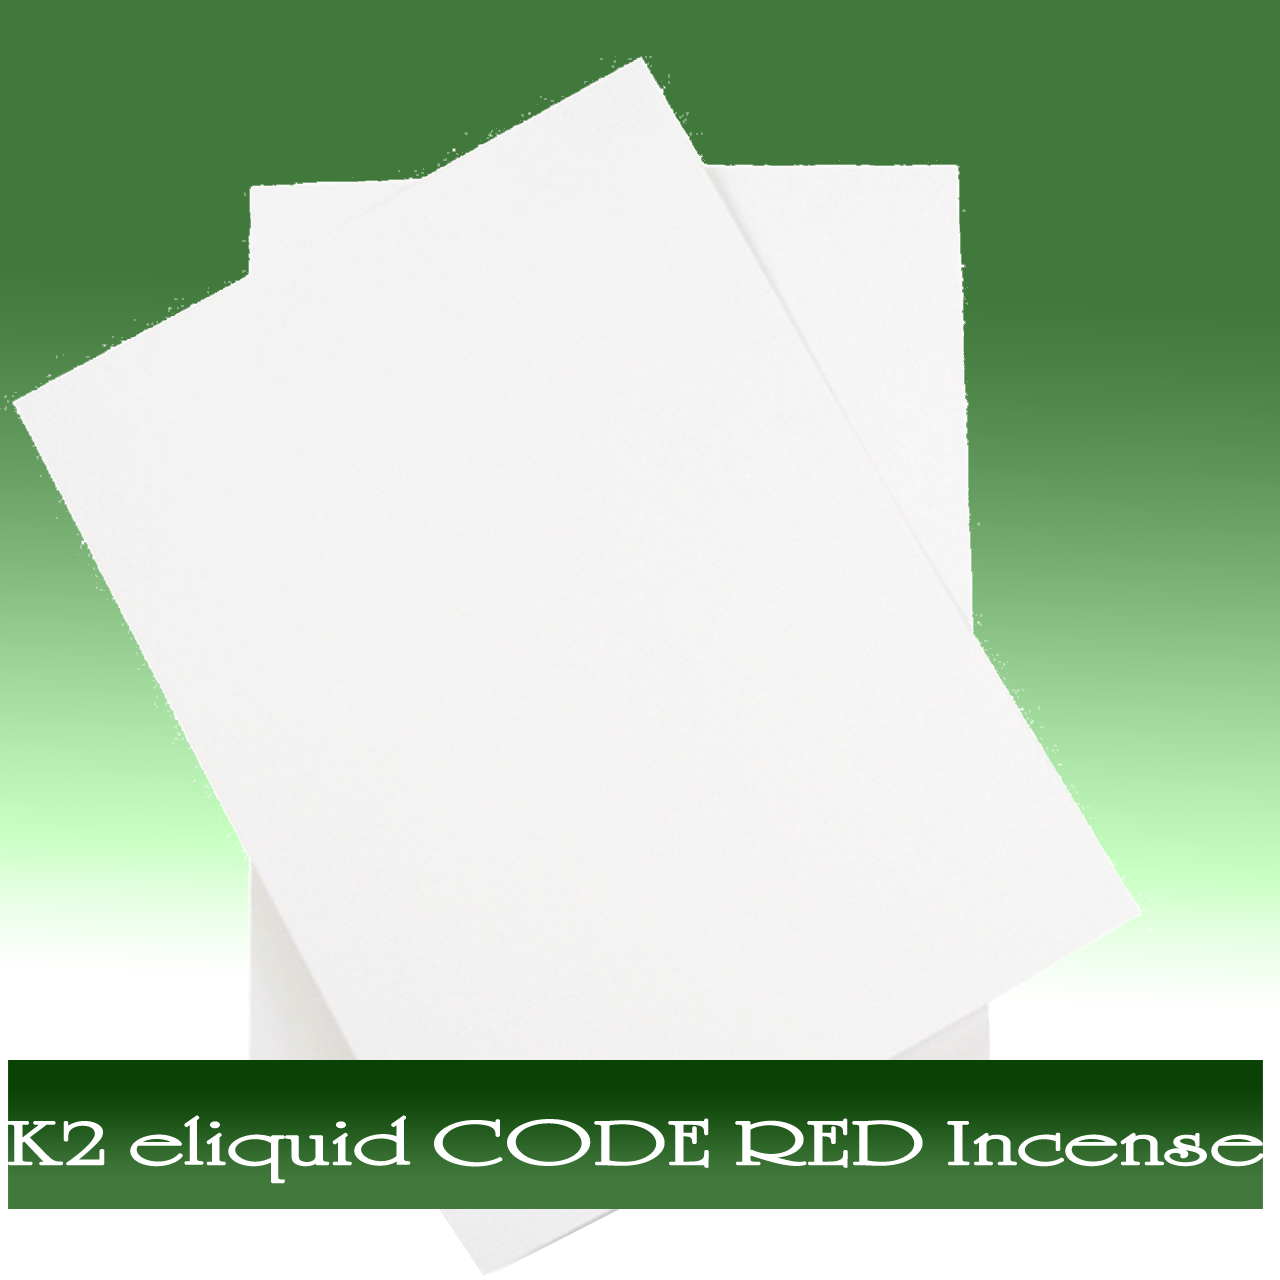 K2 e-liquid CODE RED Incense On Paper Online